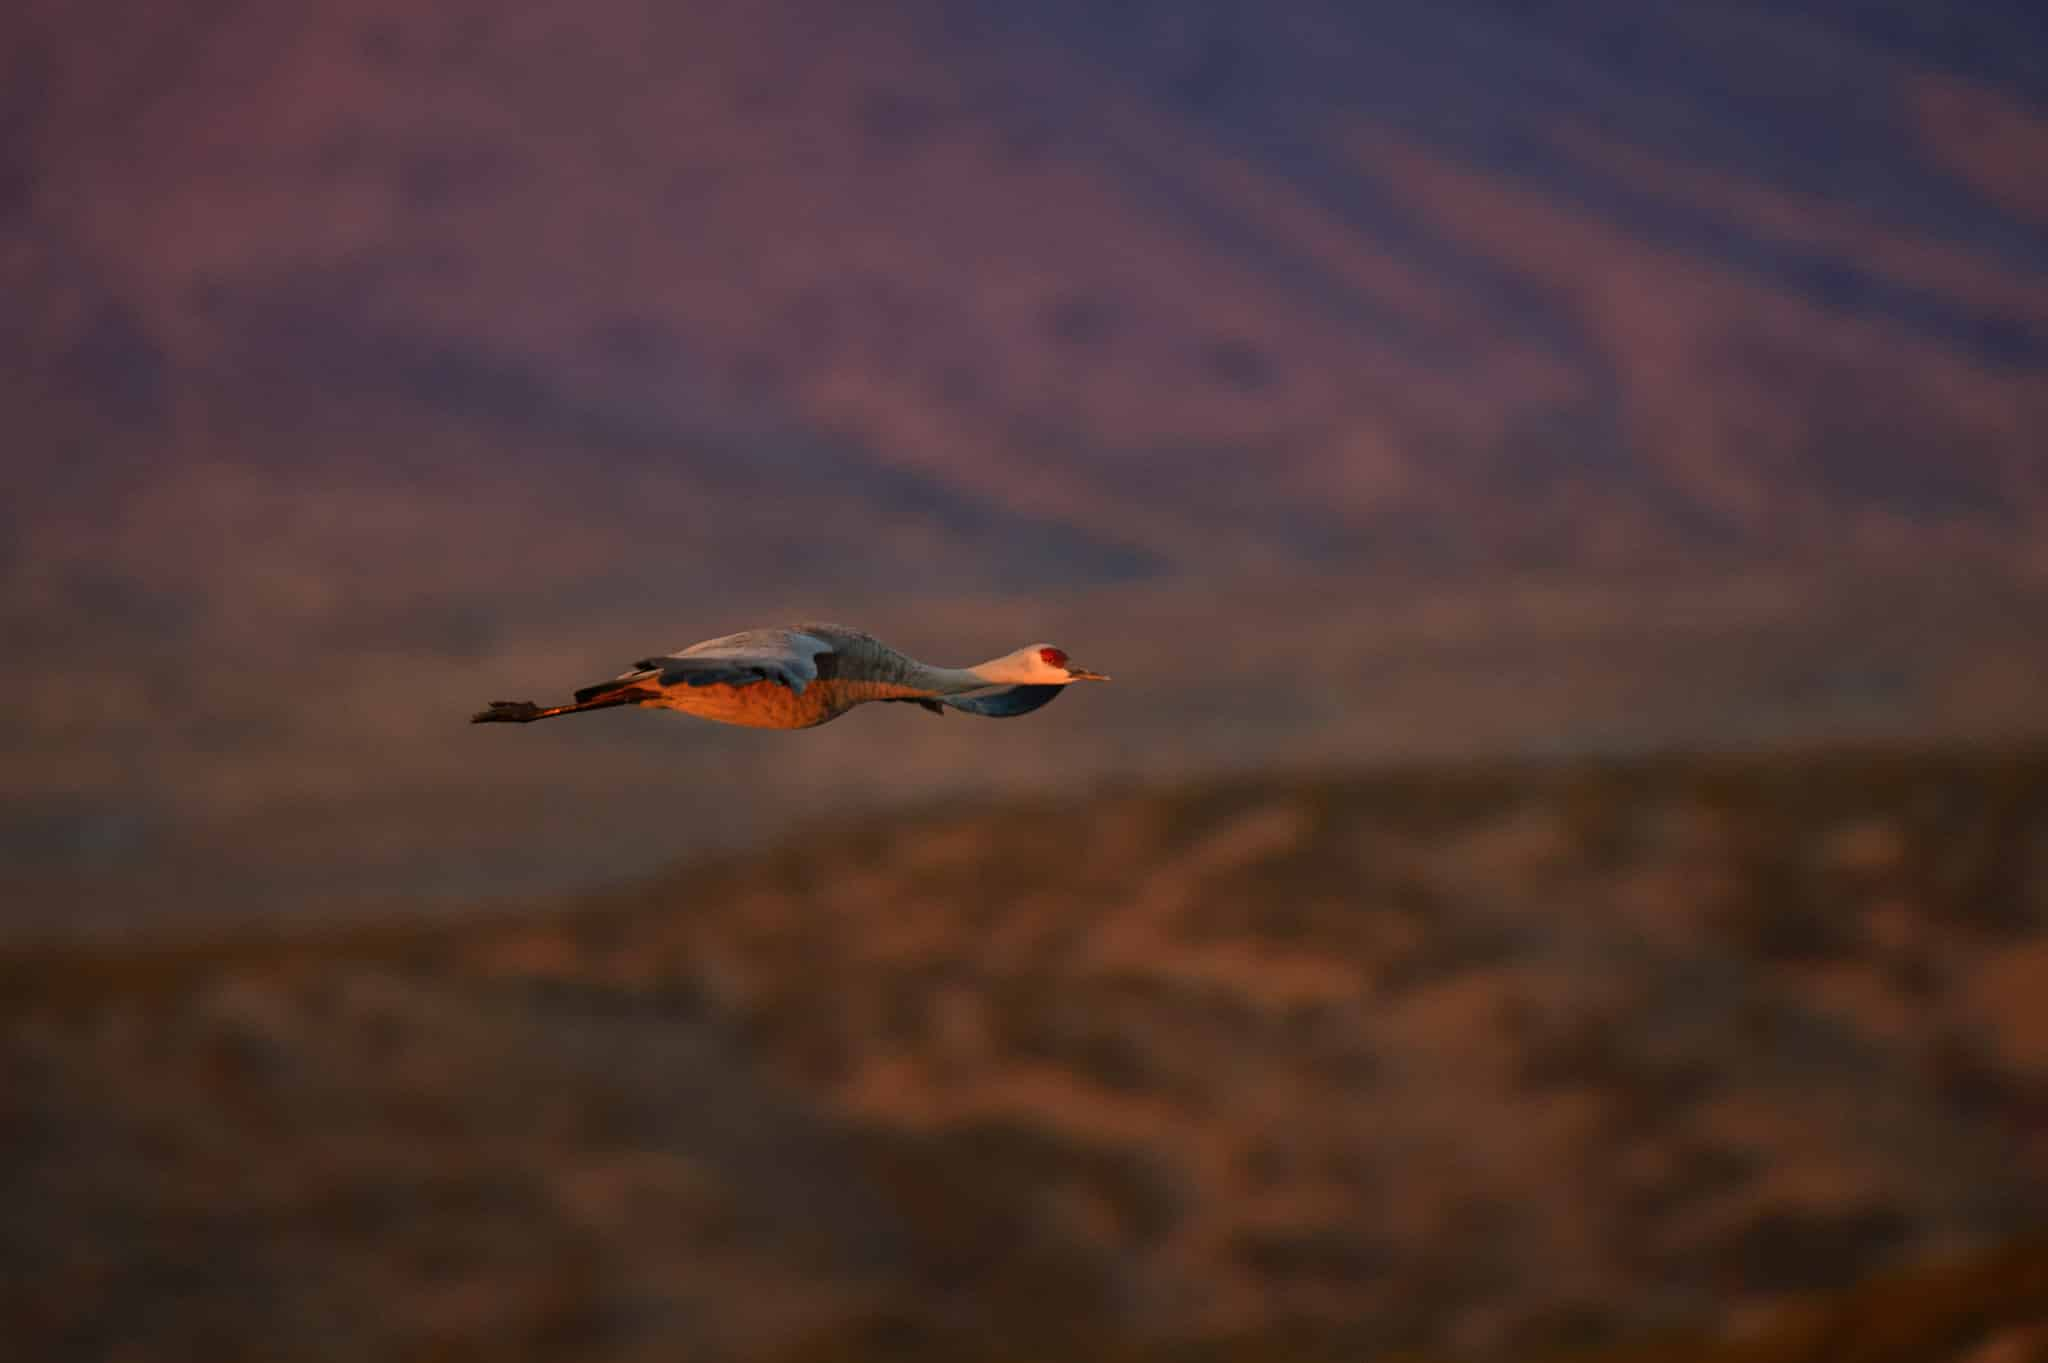 A lone Sandhill Crane glides through the dawn light to join other cranes feeding in the nearby cornfields in Bosque del Apache National Wildlife Refuge in New Mexico.